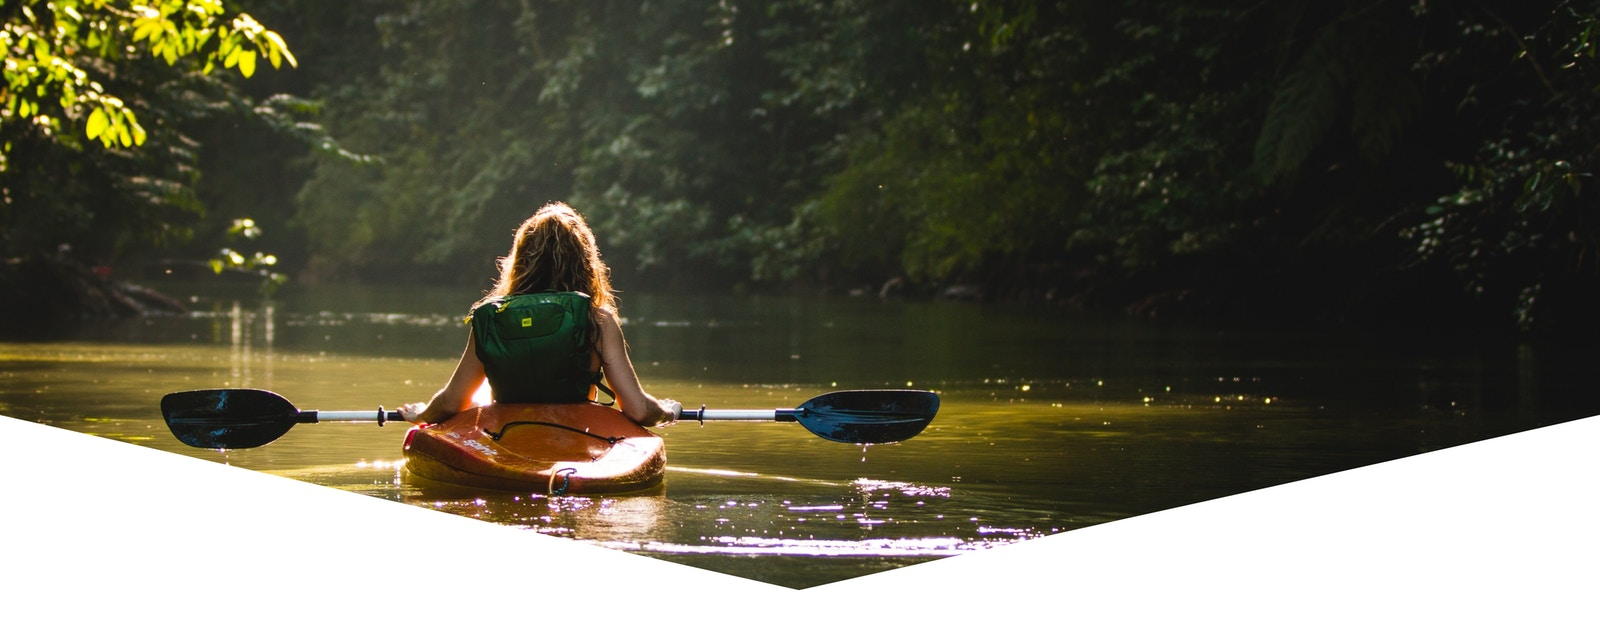 Woman kayaking on a small river or creek